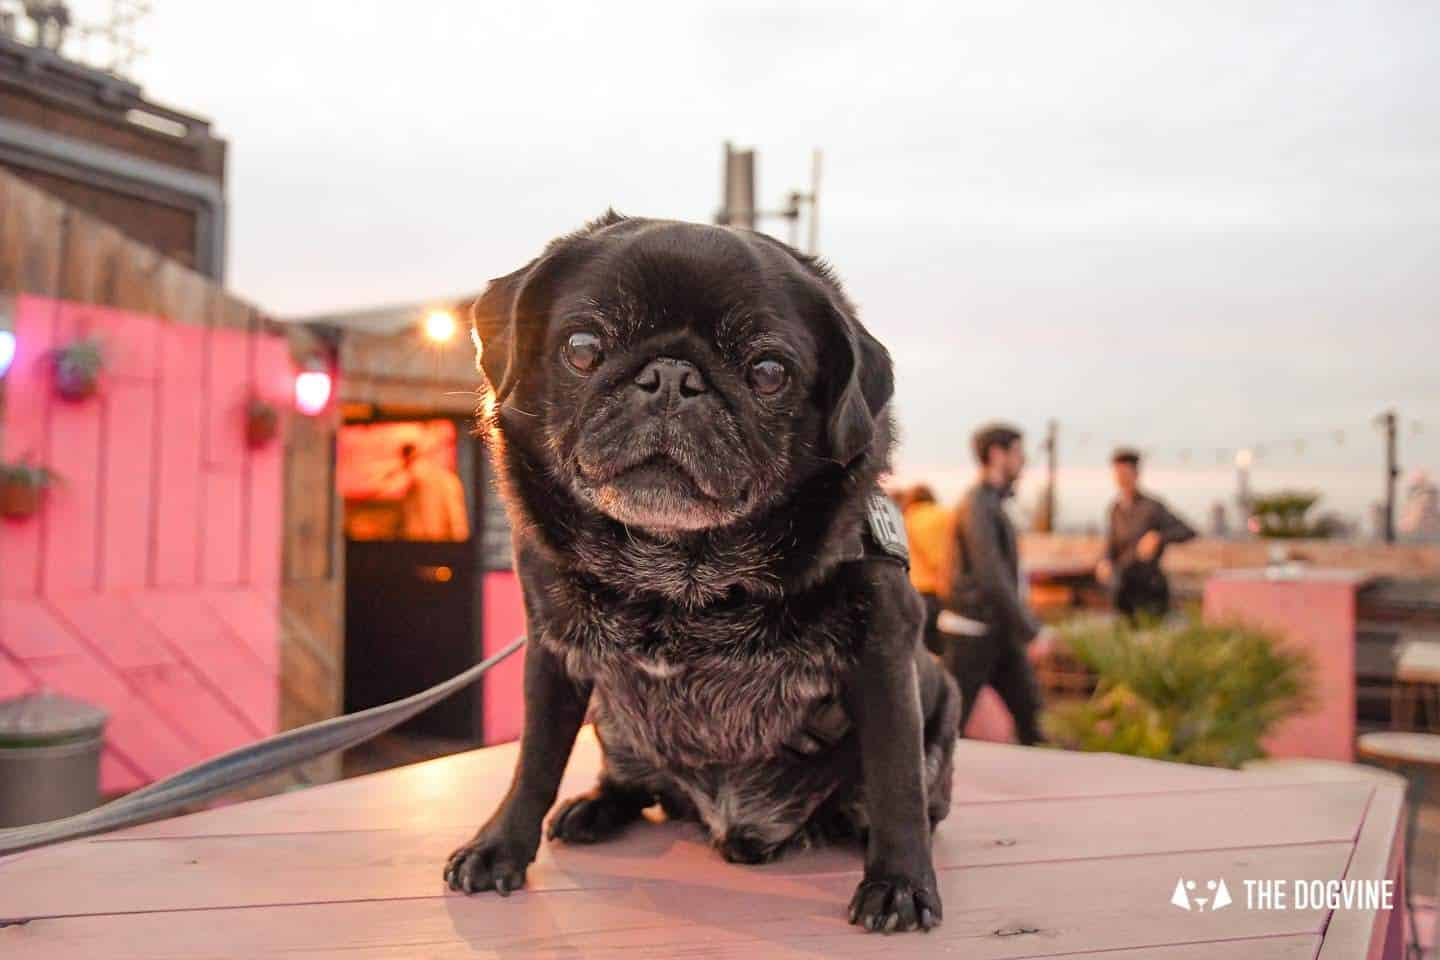 Spectacular Movie Moments at the Dog-friendly Rooftop Film Club 42